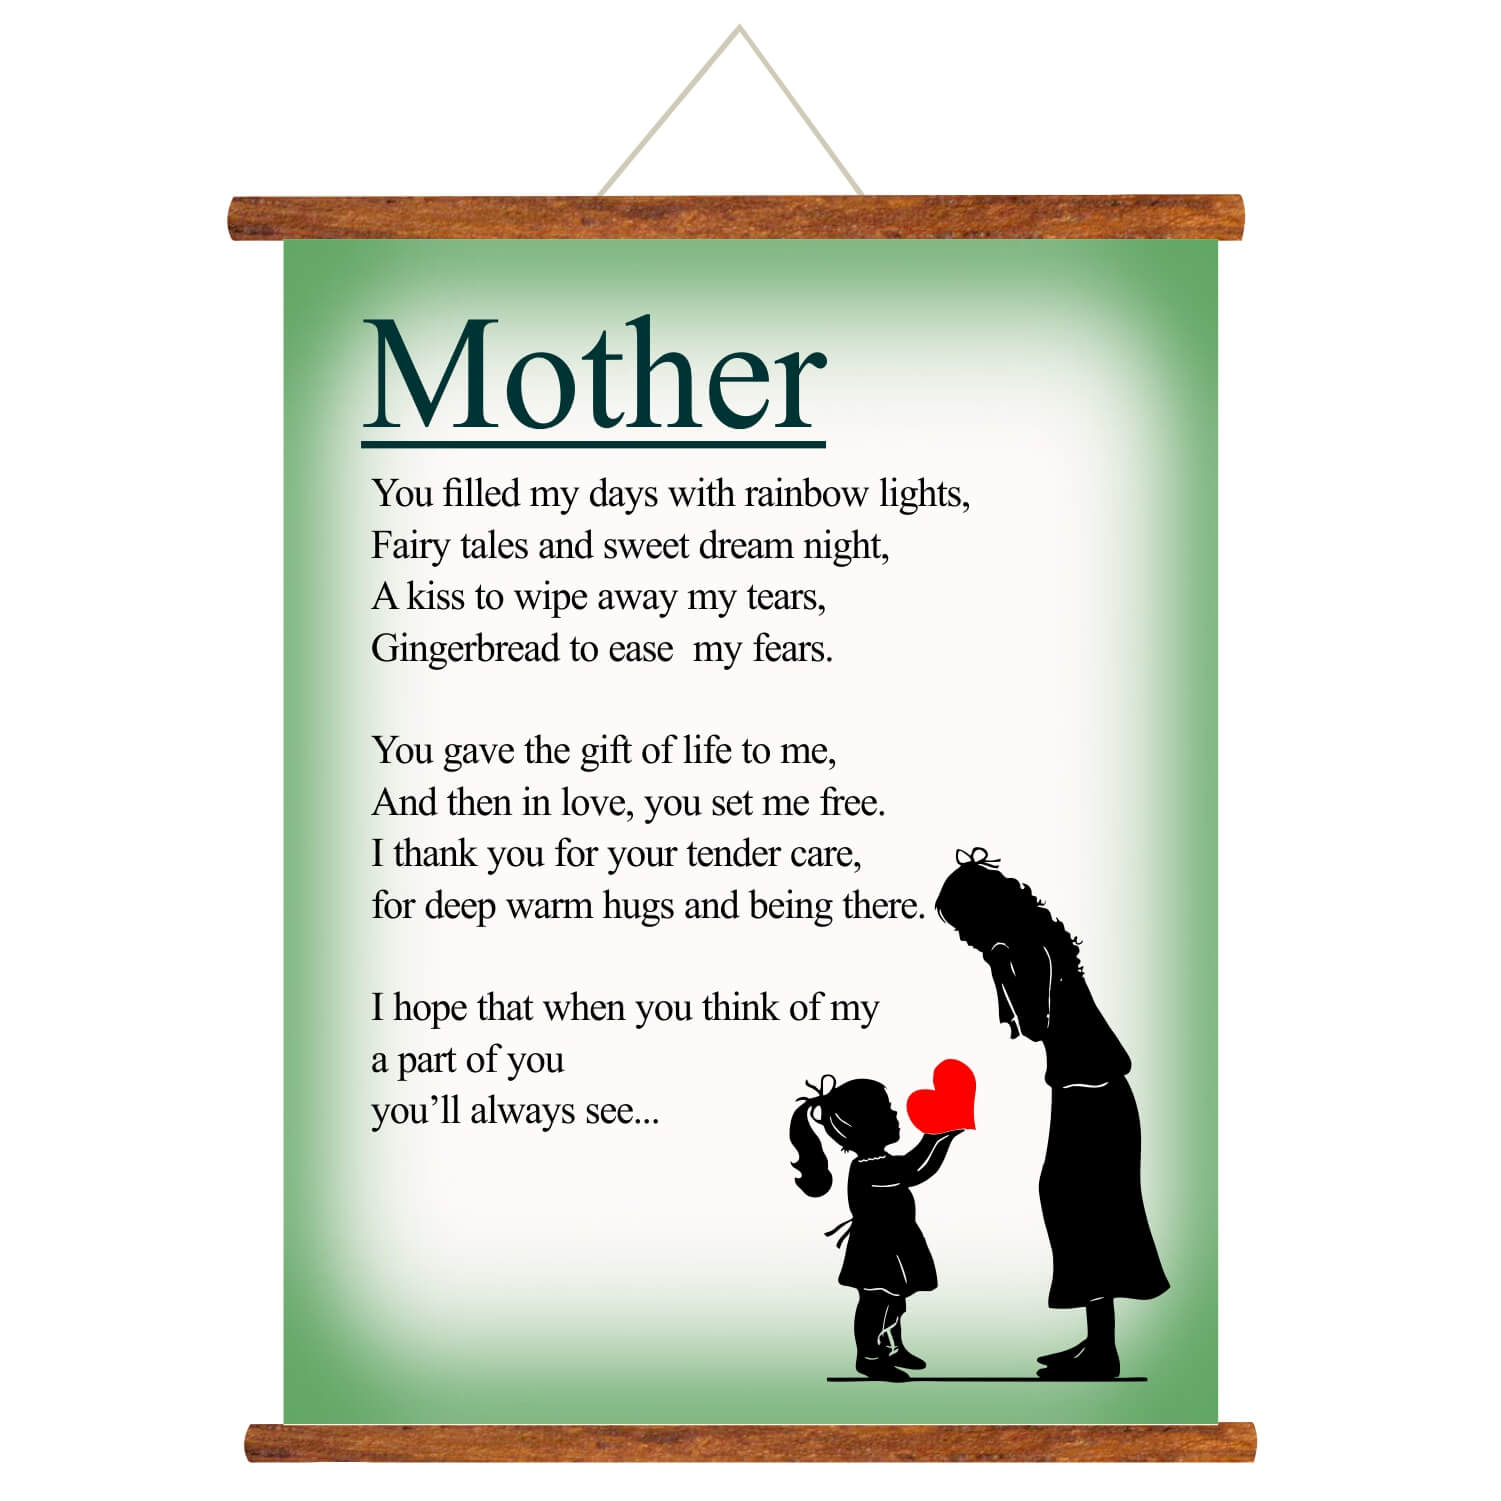 Poem For Mother Scroll Greeting Card Giftsmate Mother is already very sensitive and emotional creator of god towards her offspring but if you want to make her emotional and crying on mother's. poem for mother scroll greeting card